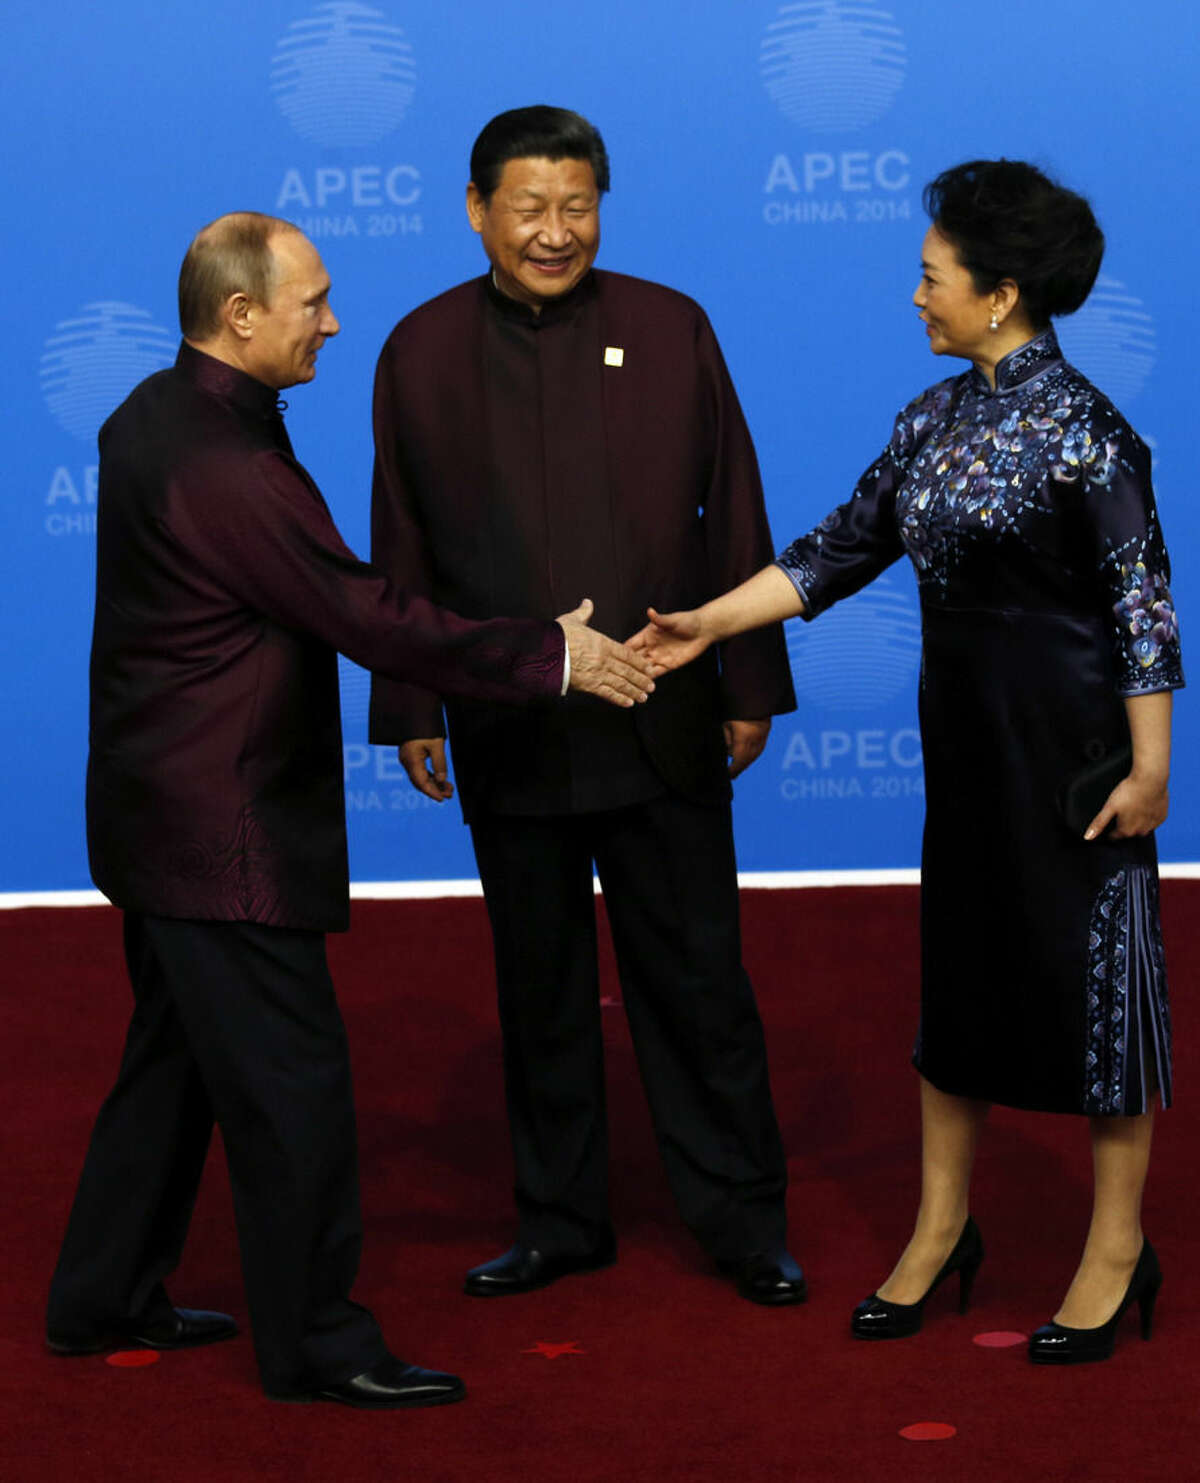 In this photo taken Monday, Nov. 10, 2014, Russia's President Vladimir Putin, left, shakes hands with Chinese first lady Peng Liyuan as Chinese President Xi Jinping, center, watches before a dinner hosted for APEC leaders at the Beijing National Aquatics Center in Beijing. It was a warm gesture on a chilly night when Vladimir Putin wrapped a shawl around the wife of Xi Jinping later in the evening while the Chinese president chatted with Barack Obama. The only problem: Putin came off looking gallant, the Chinese summit host gauche and inattentive. (AP Photo/Ng Han Guan)